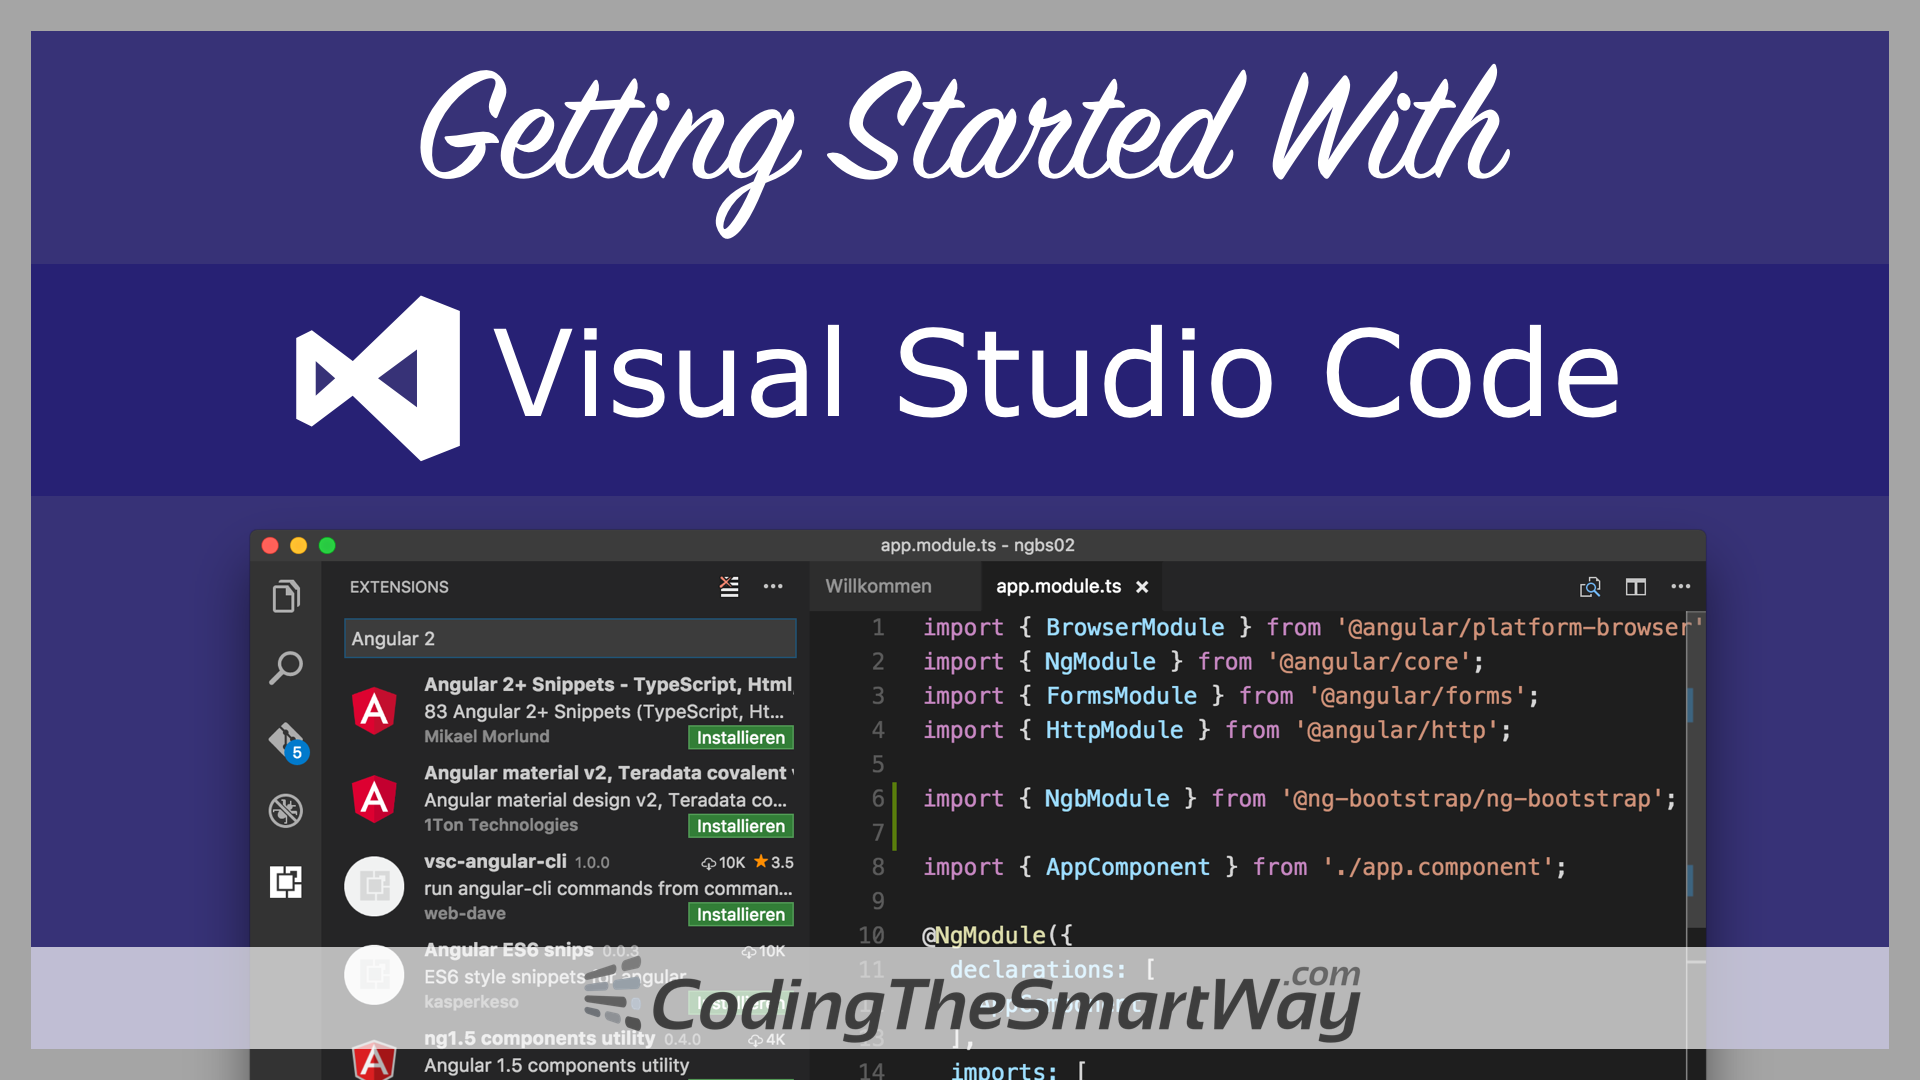 Getting Started With Visual Studio Code - CodingTheSmartWay